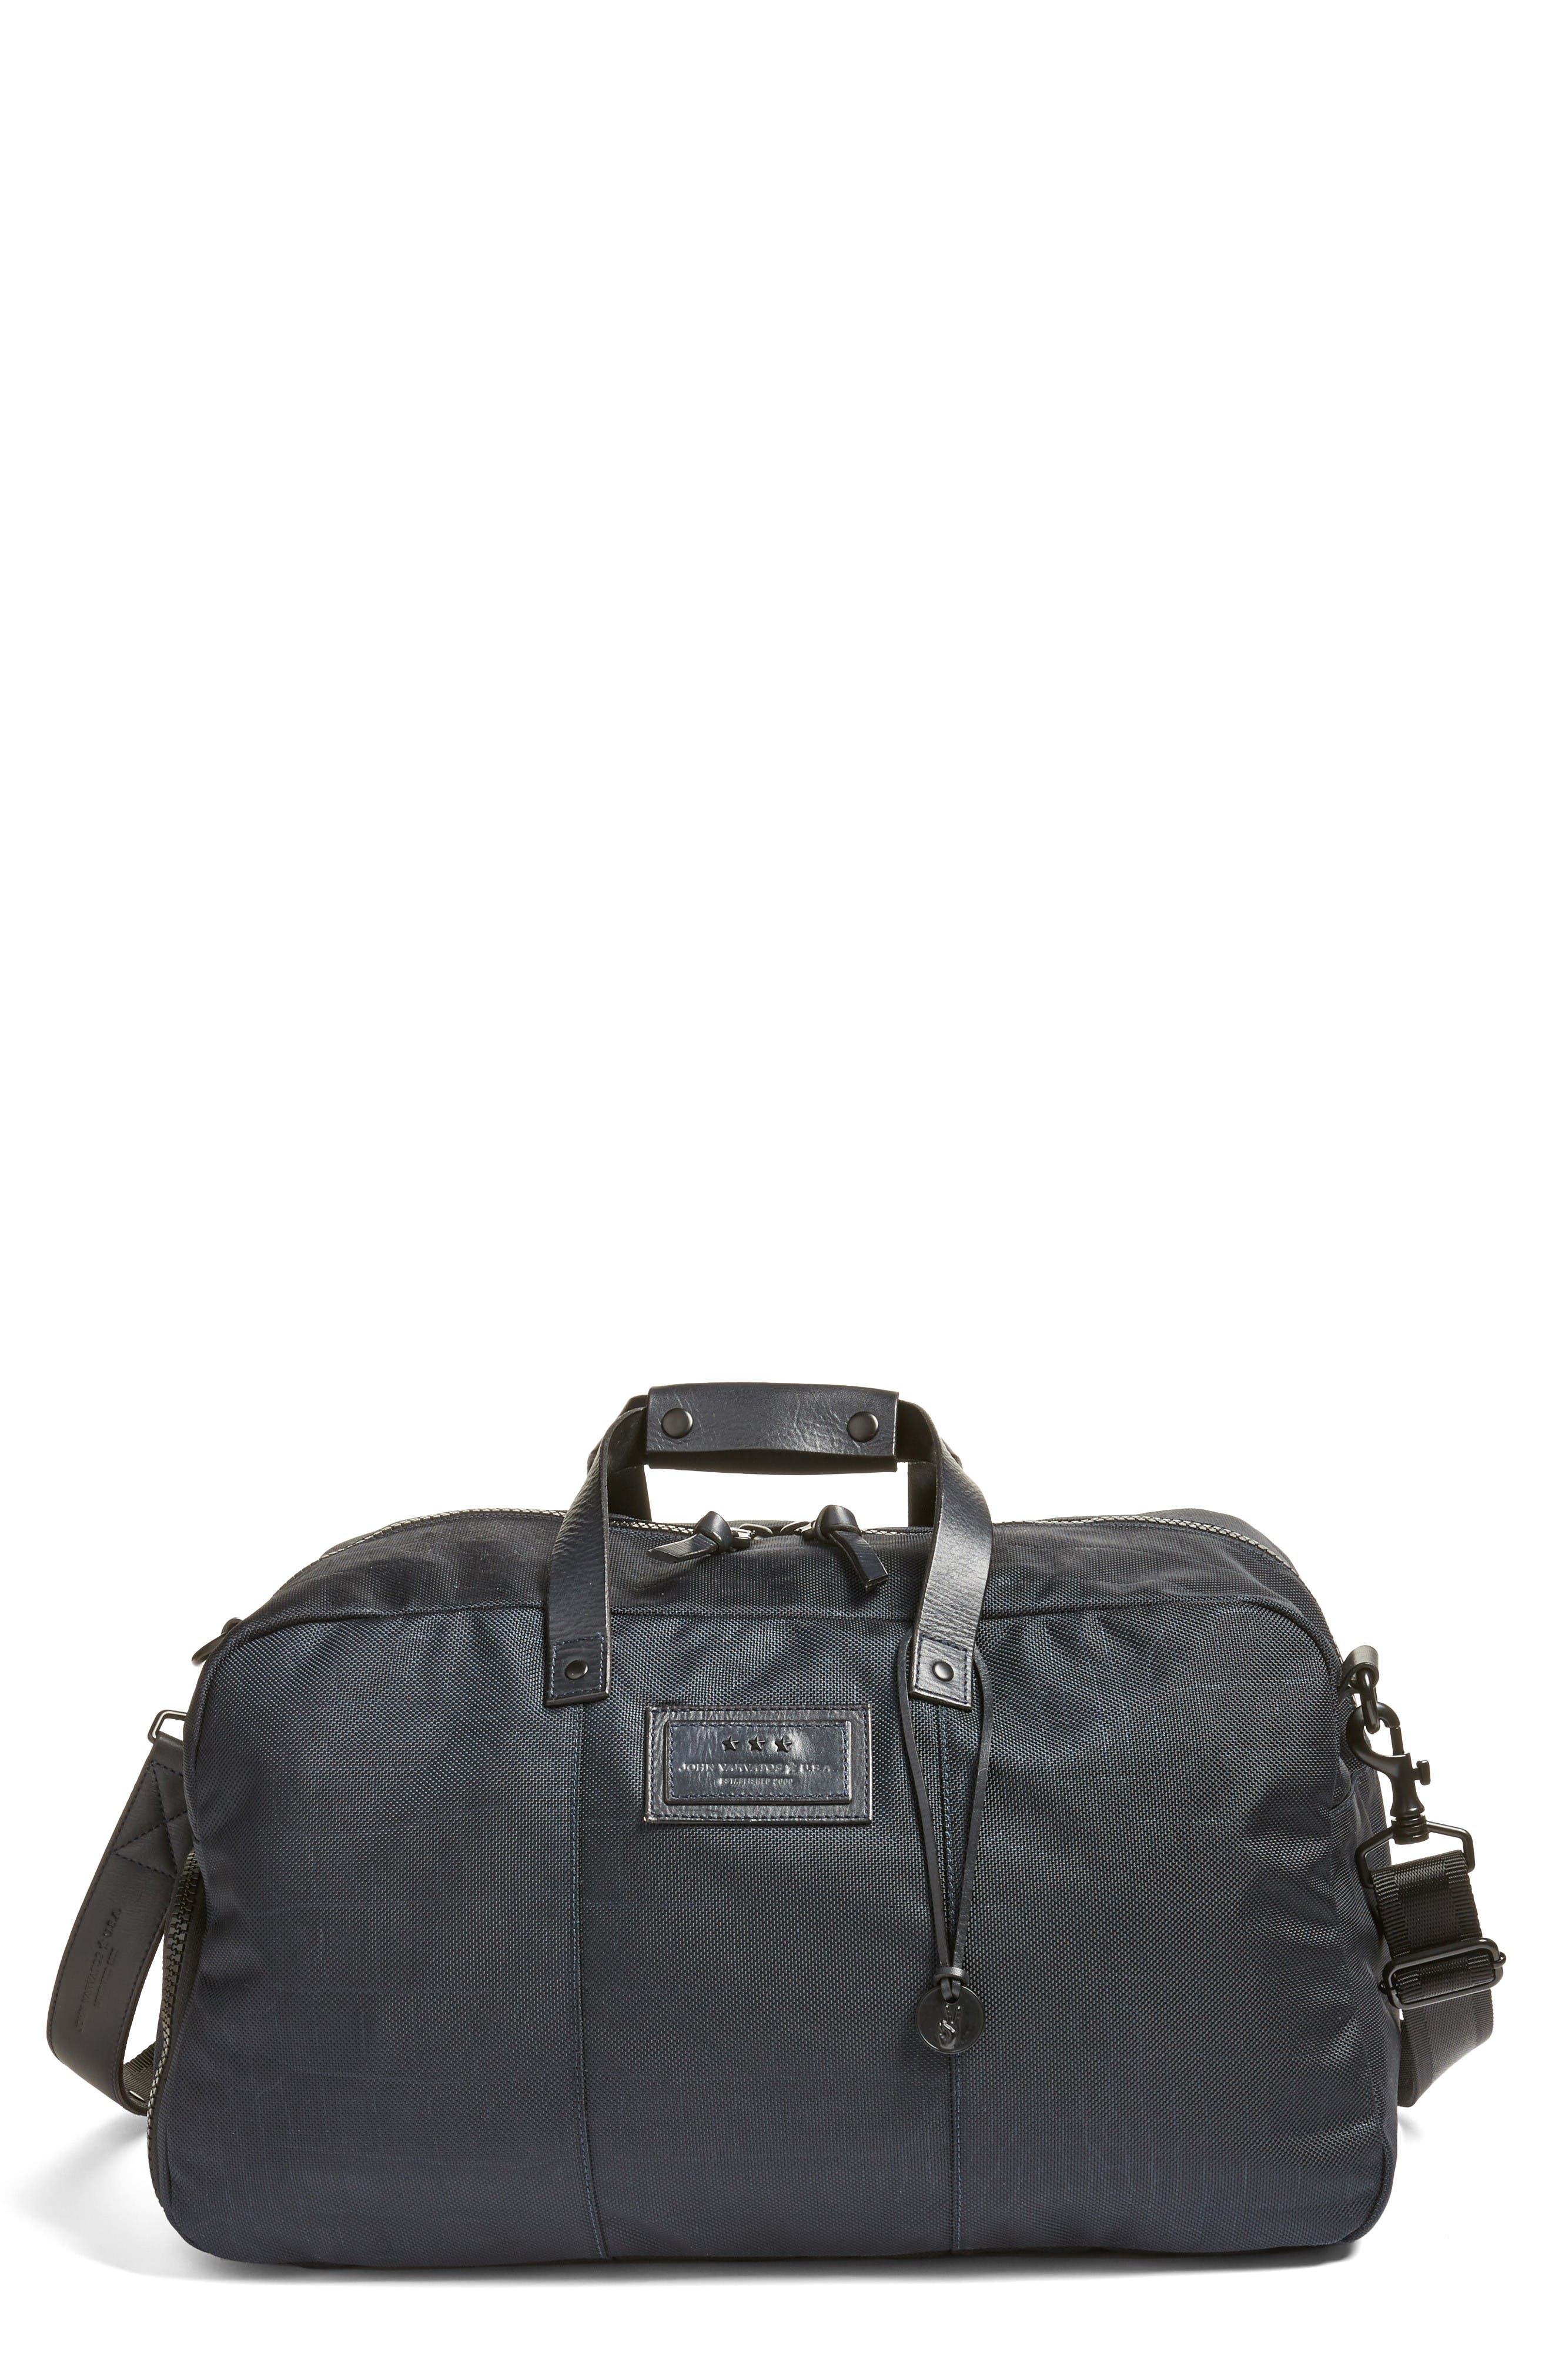 Duffel Bag,                         Main,                         color, Navy